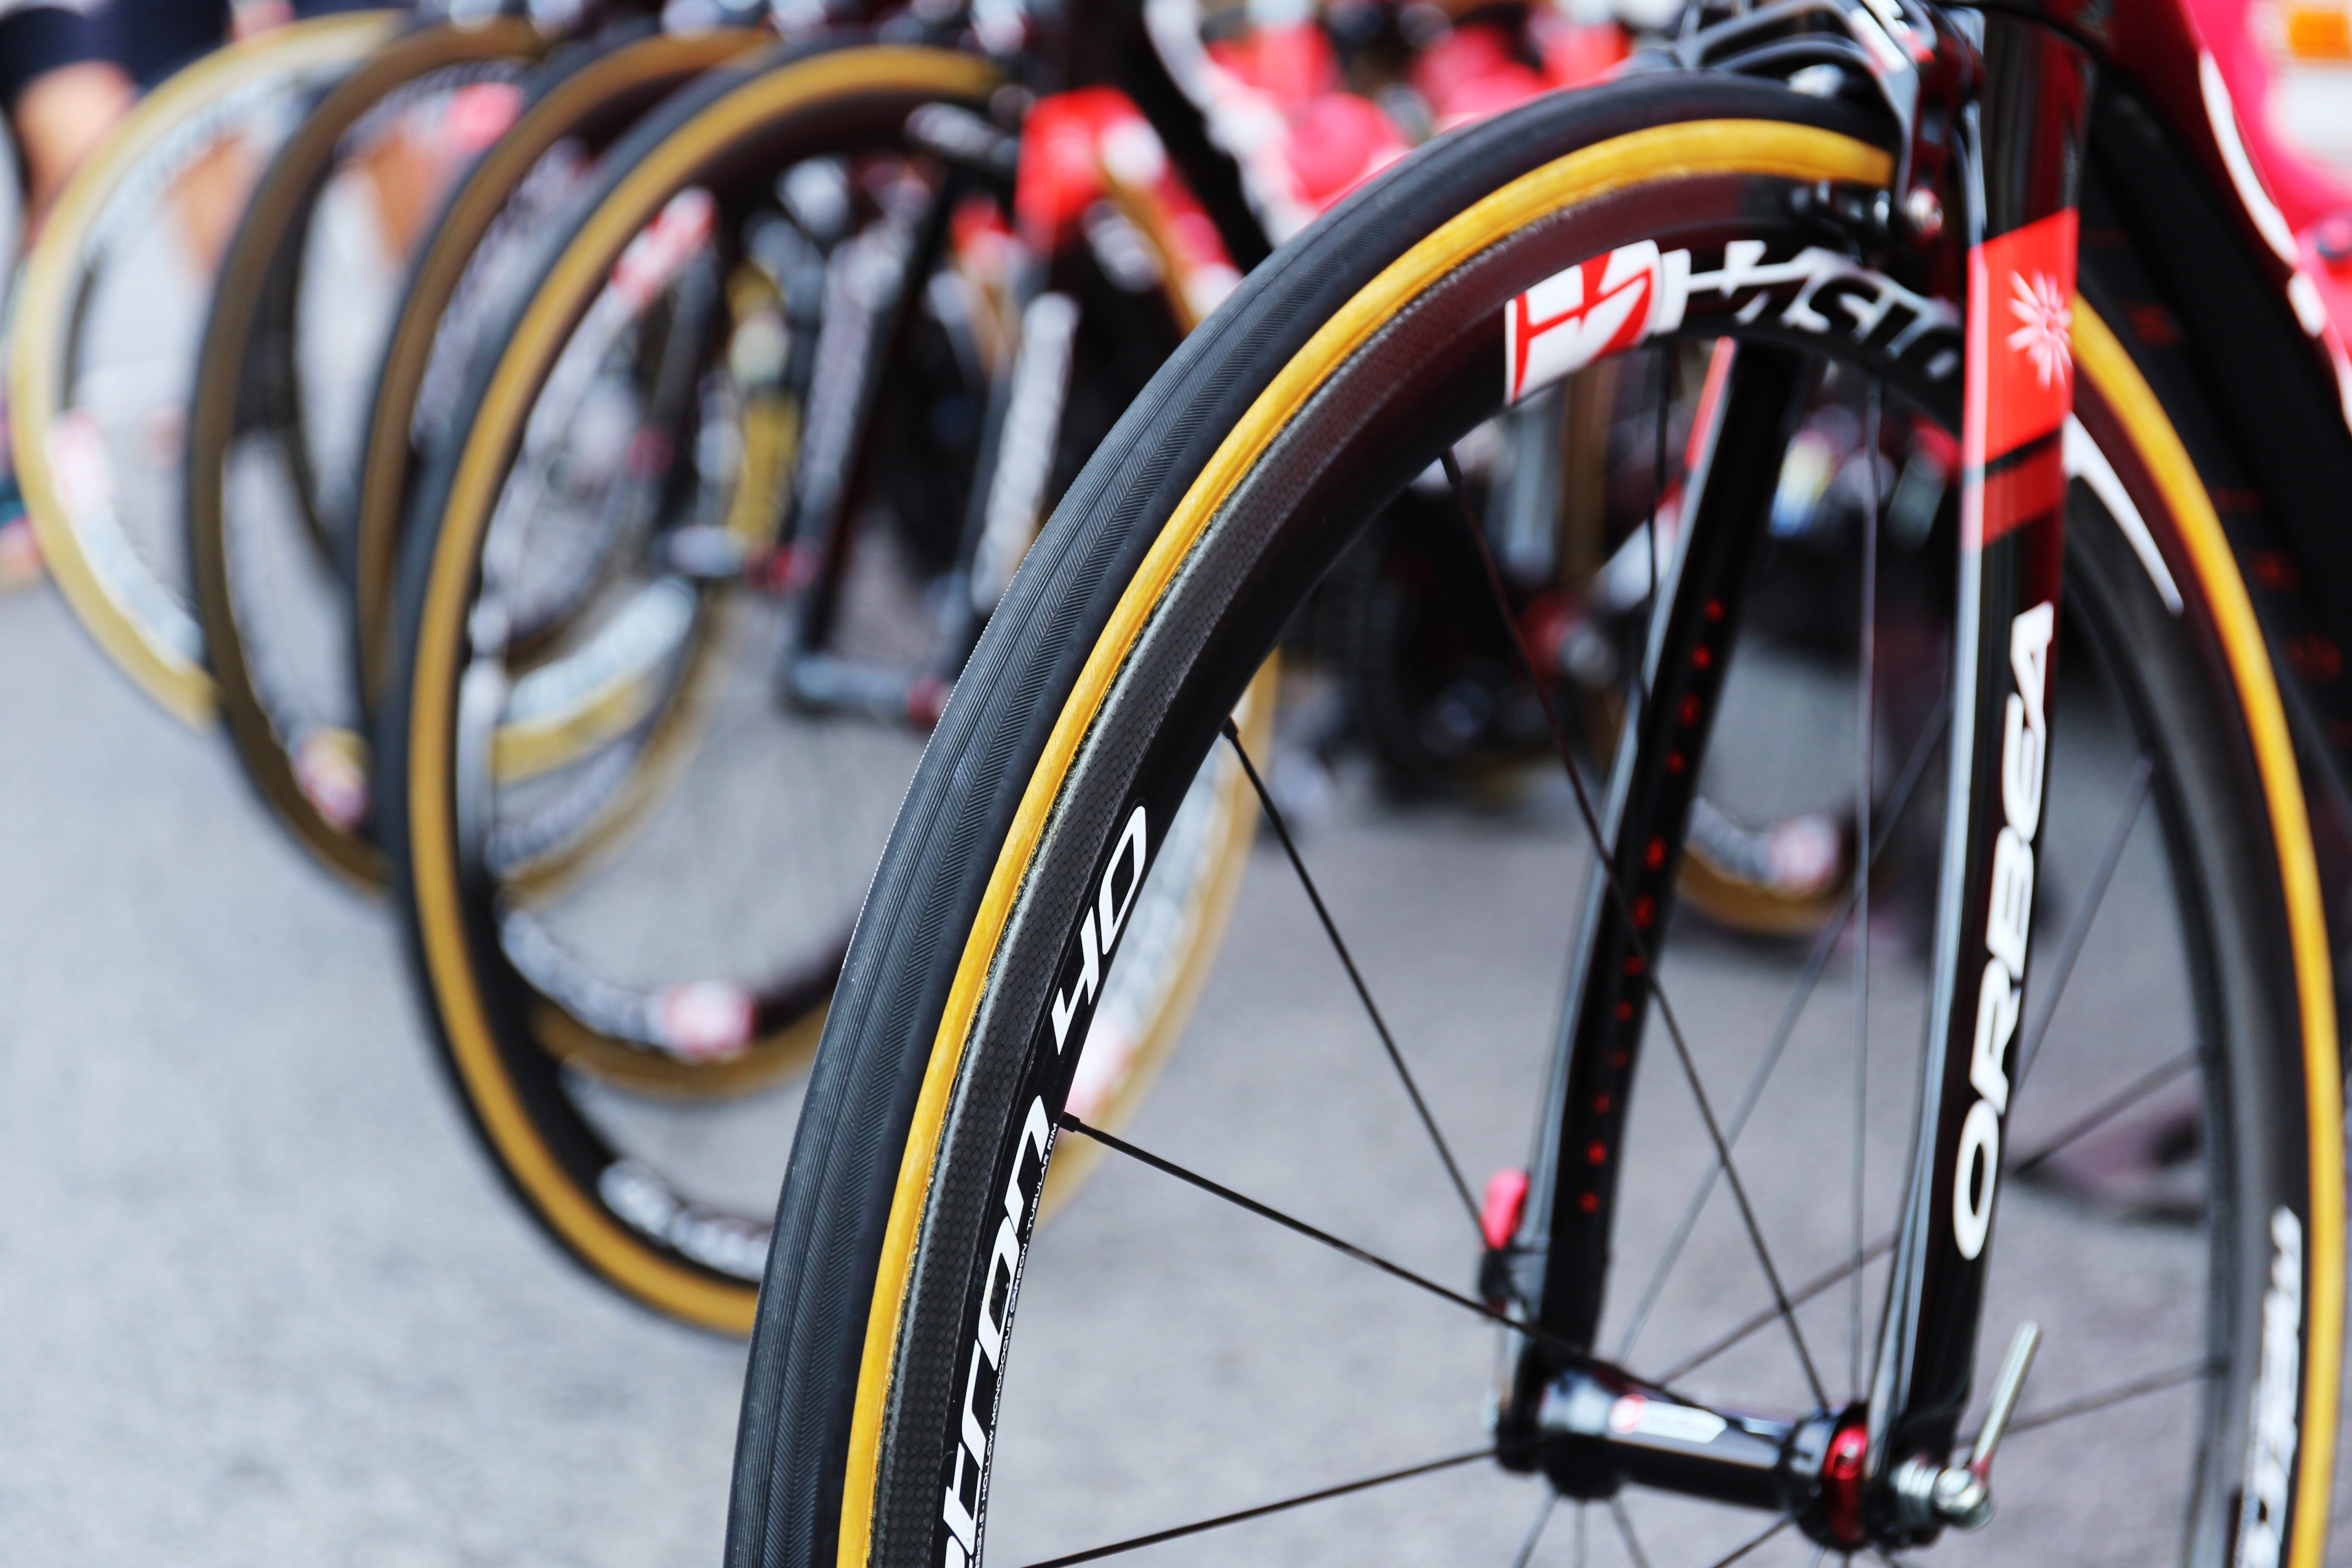 carb-rinsing improves power output cycling